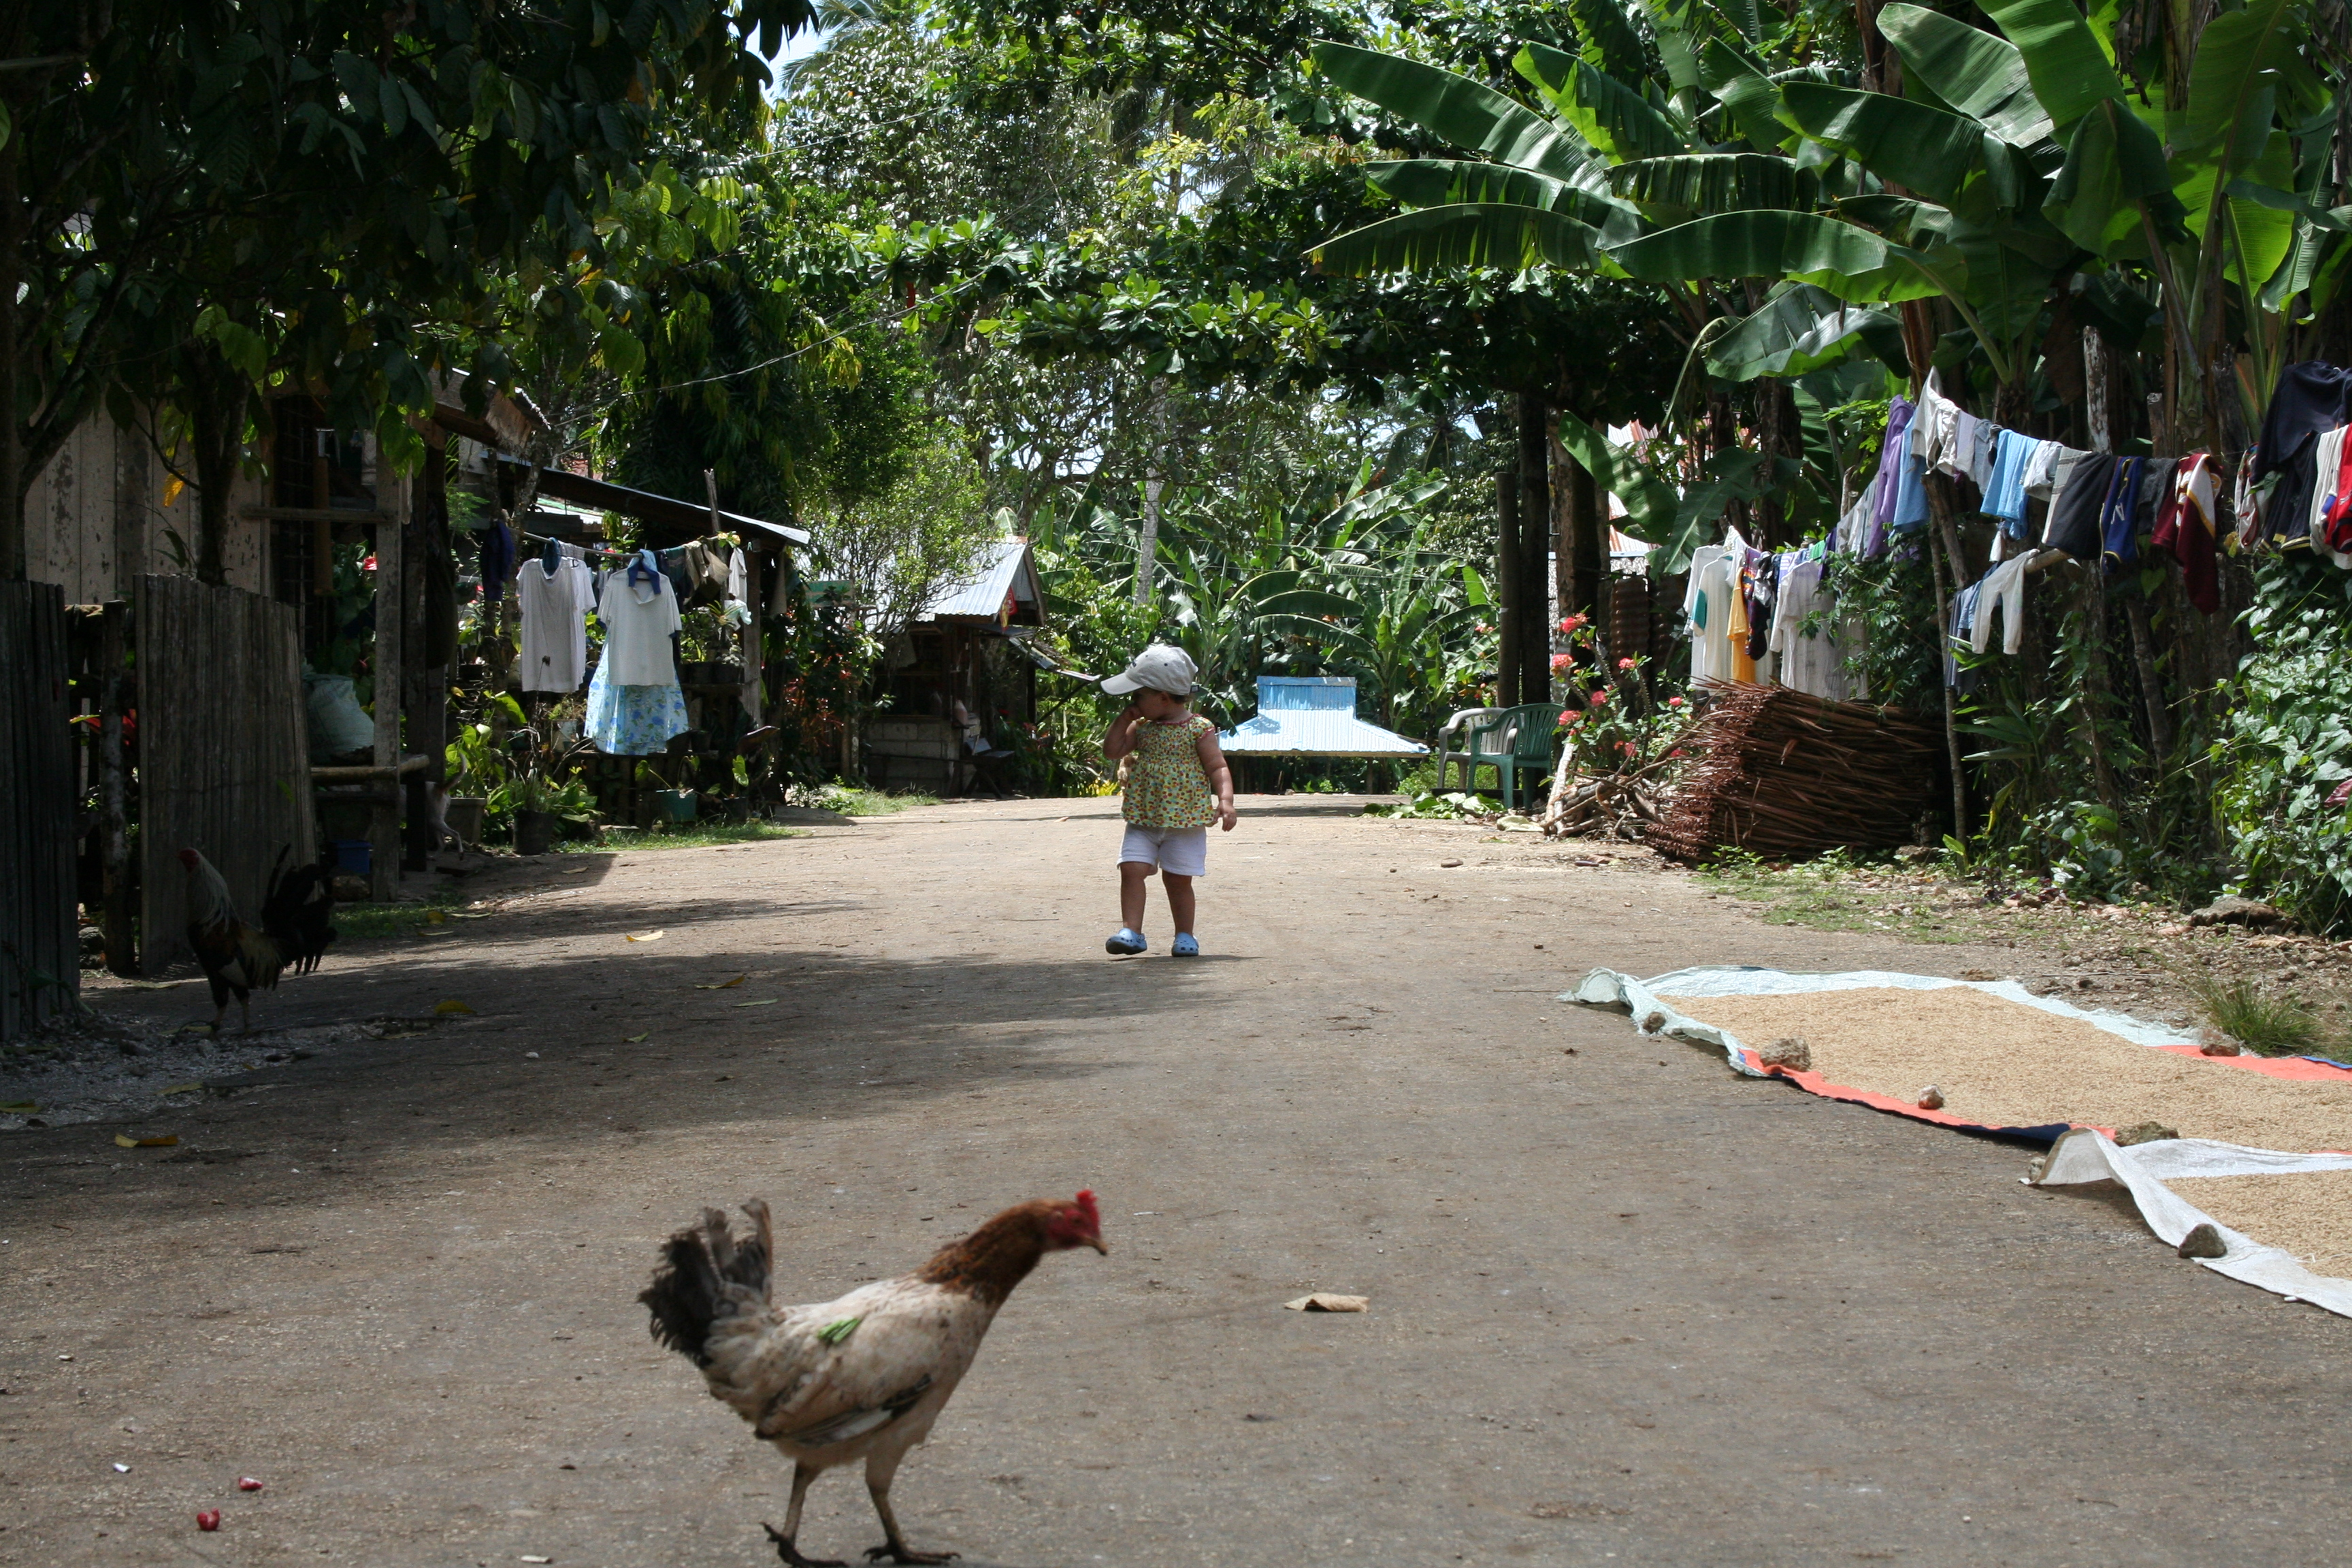 2427447314_e1bdbccc03_o - Why did the chicken cross the road? - Philippine Photo Gallery